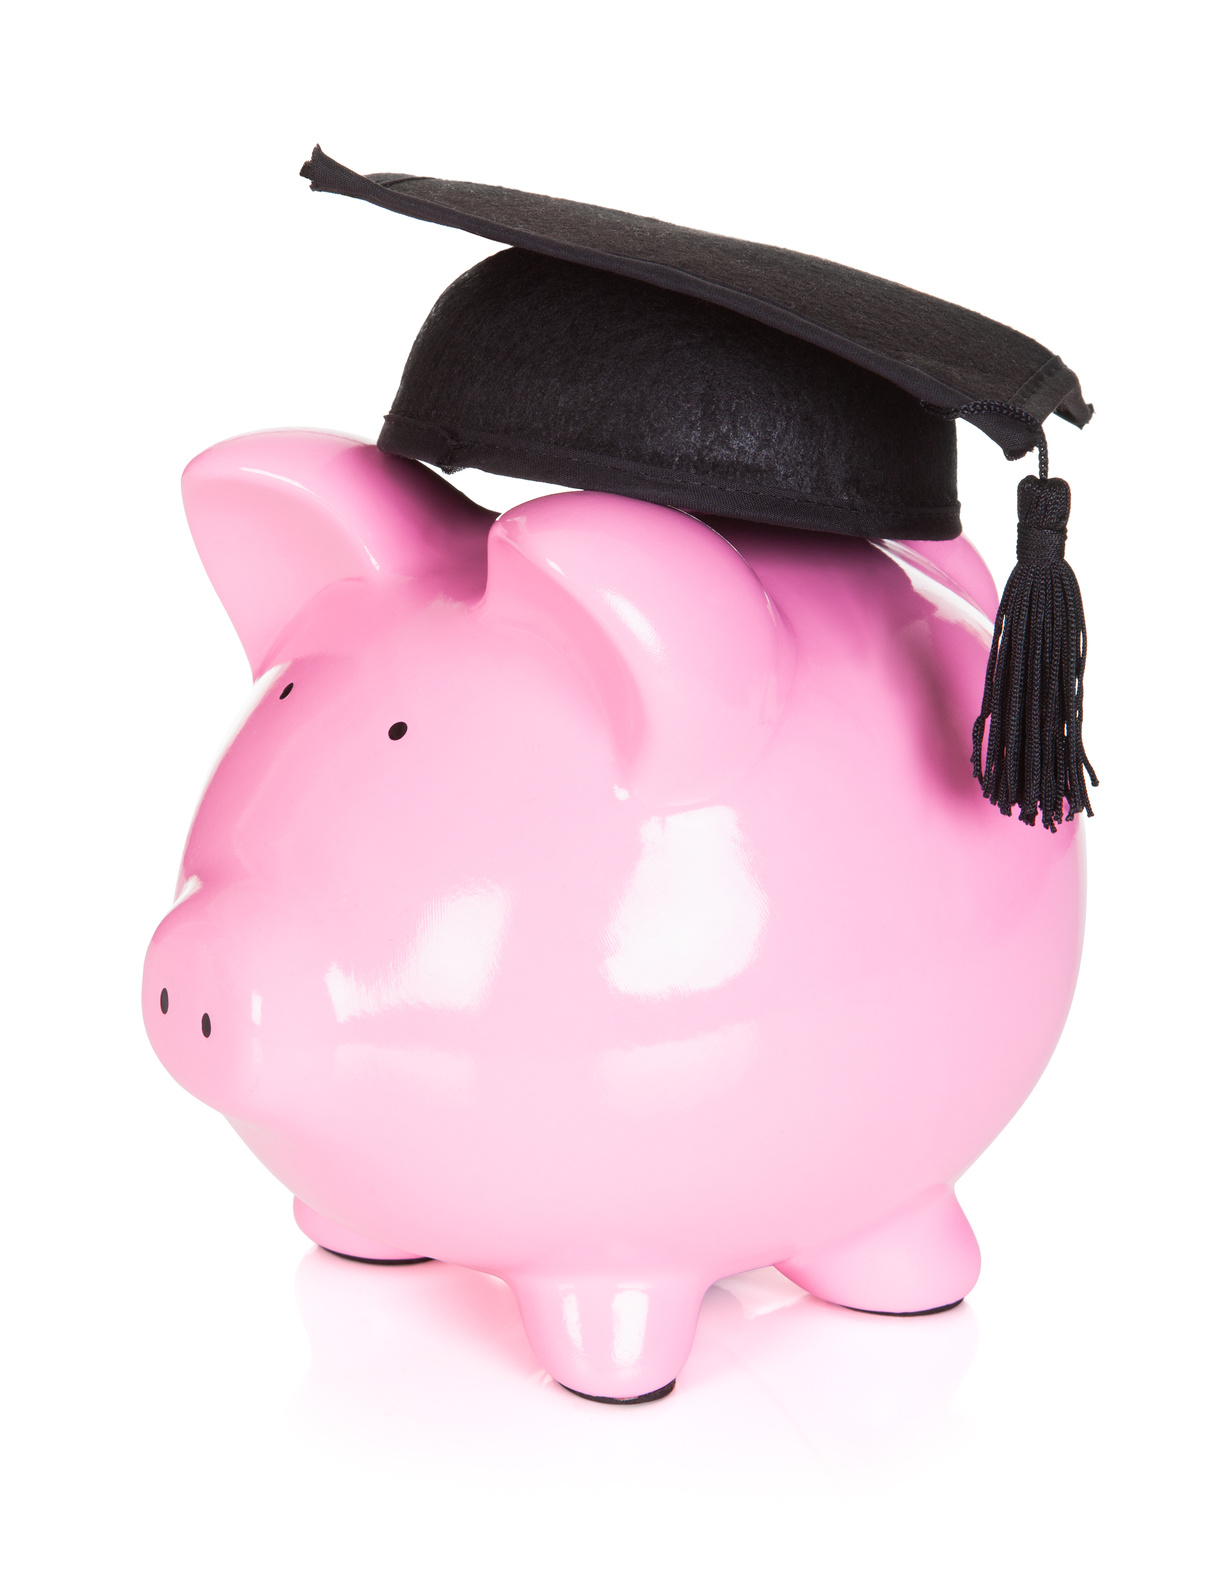 Federal Education Loan Rates Are on the Rise. Could It Affect You?